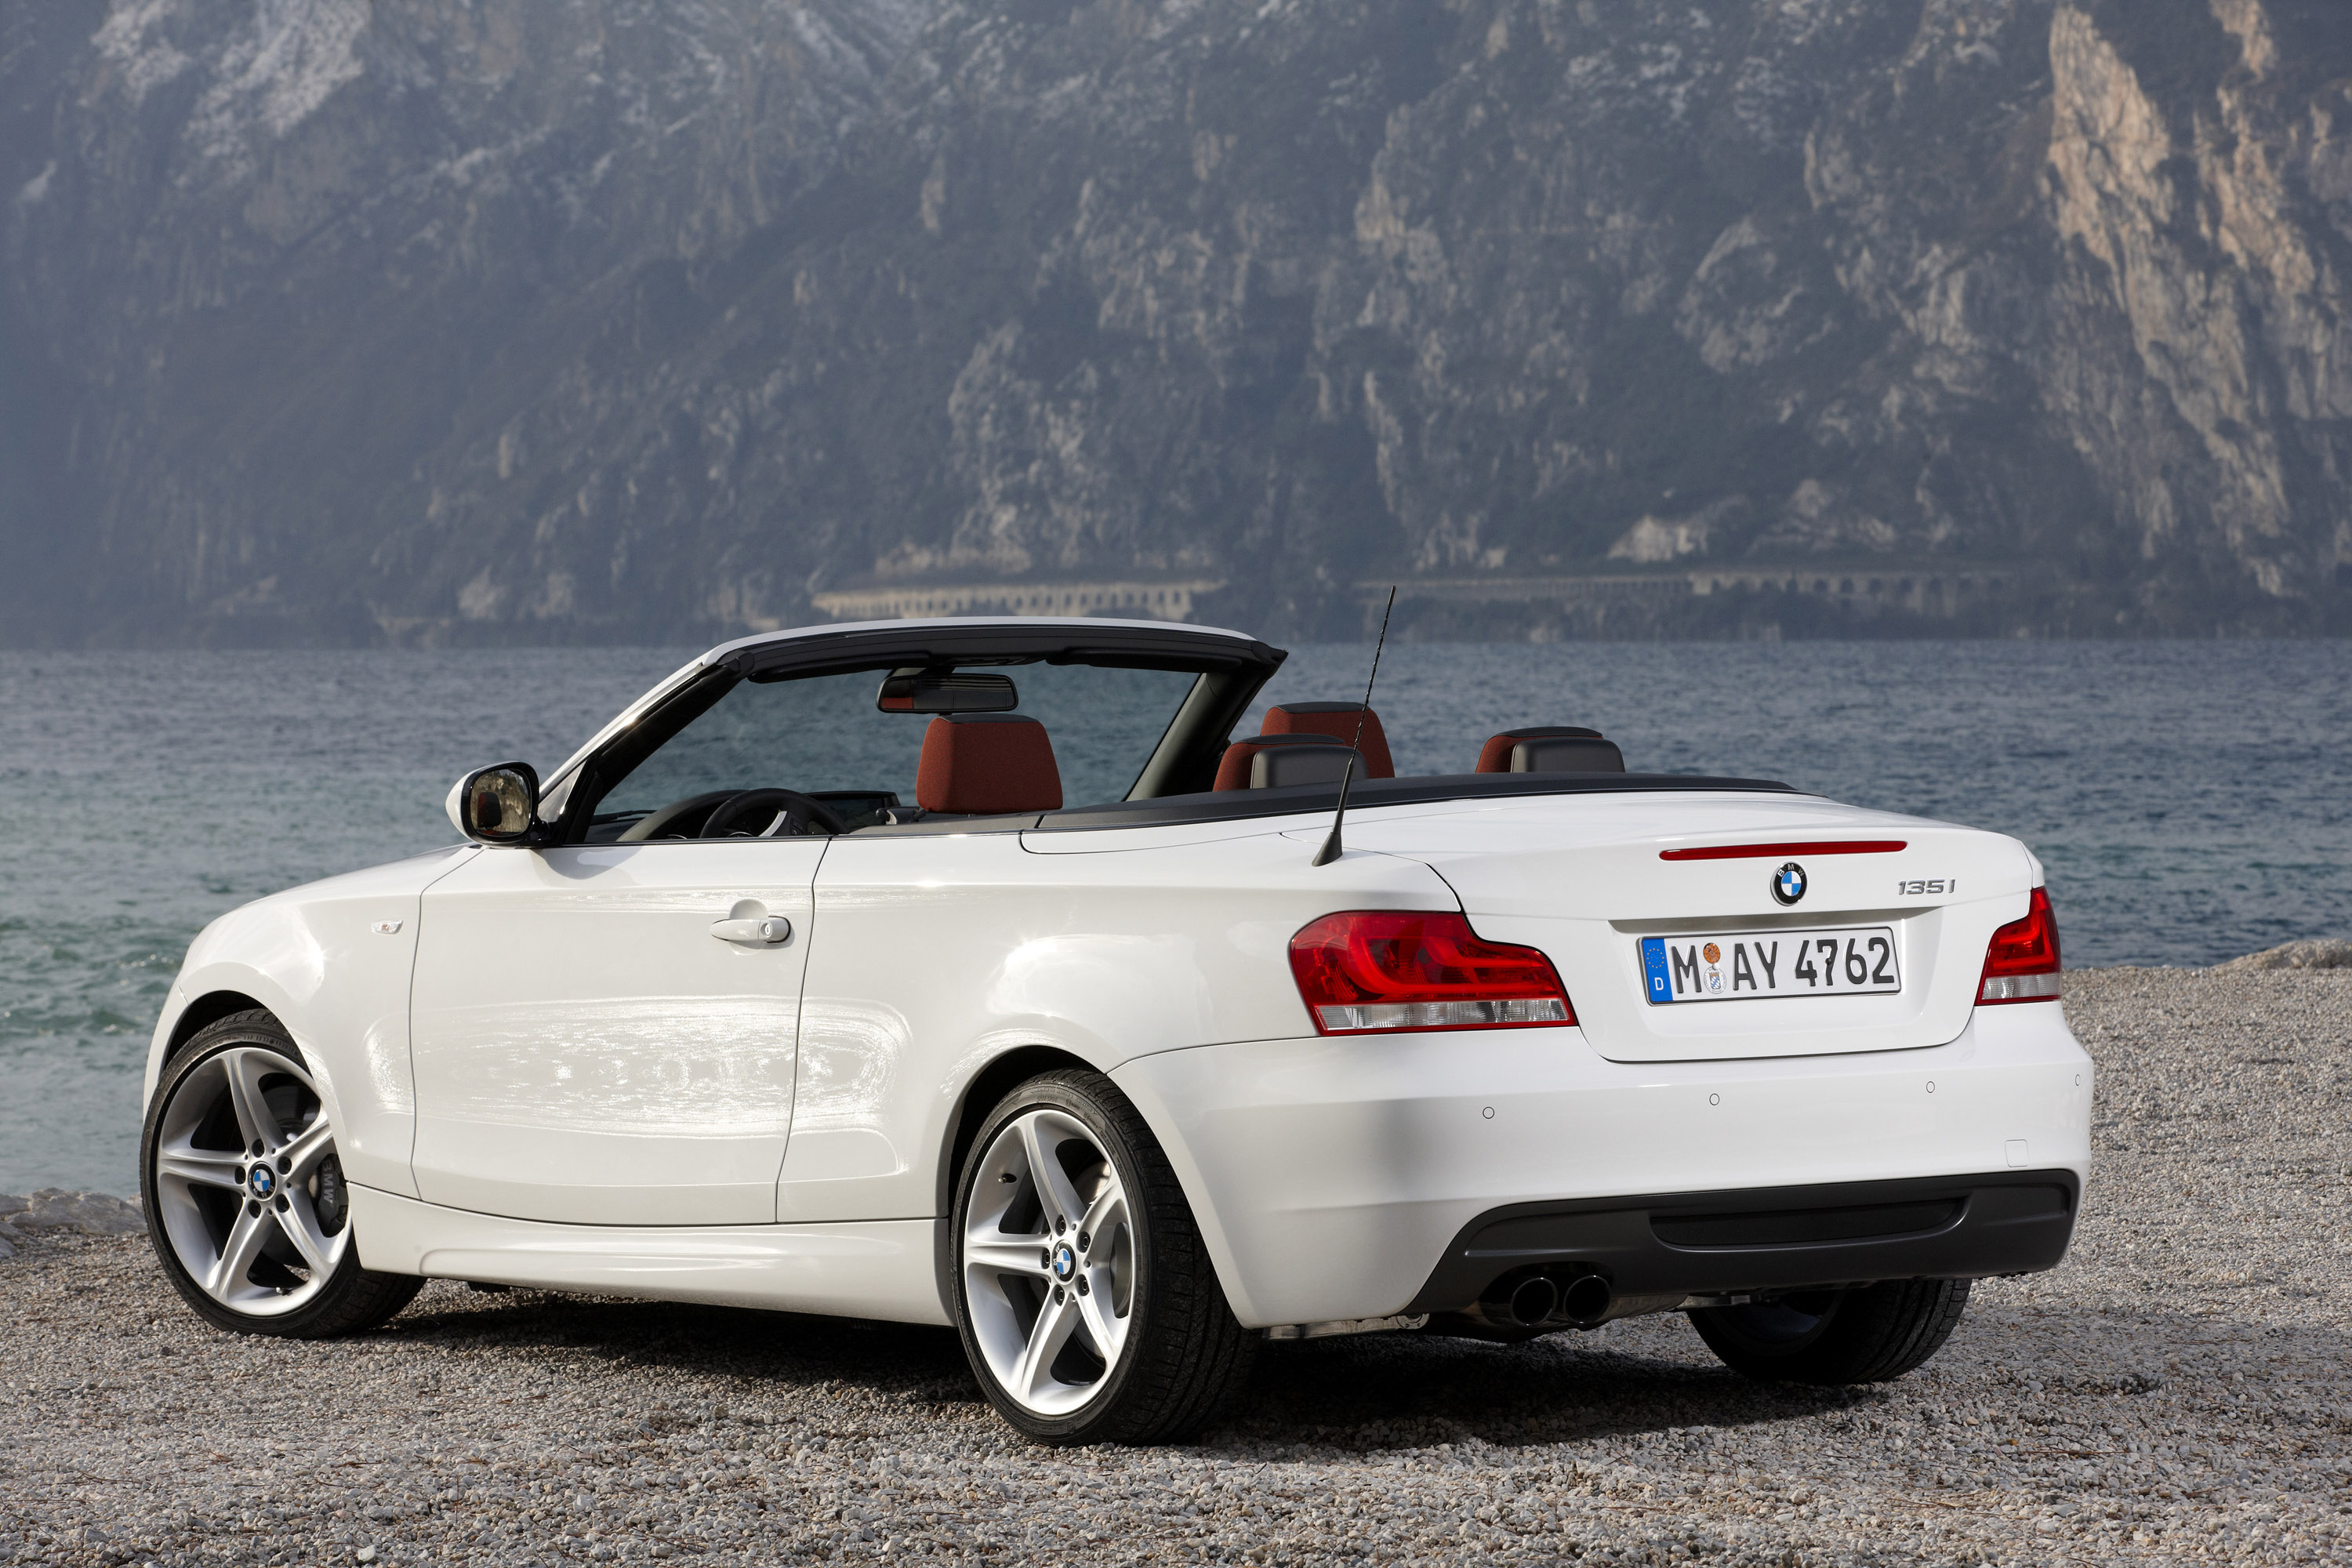 salon de d troit 2011 bmw s rie 1 cabriolet dark cars wallpapers. Black Bedroom Furniture Sets. Home Design Ideas